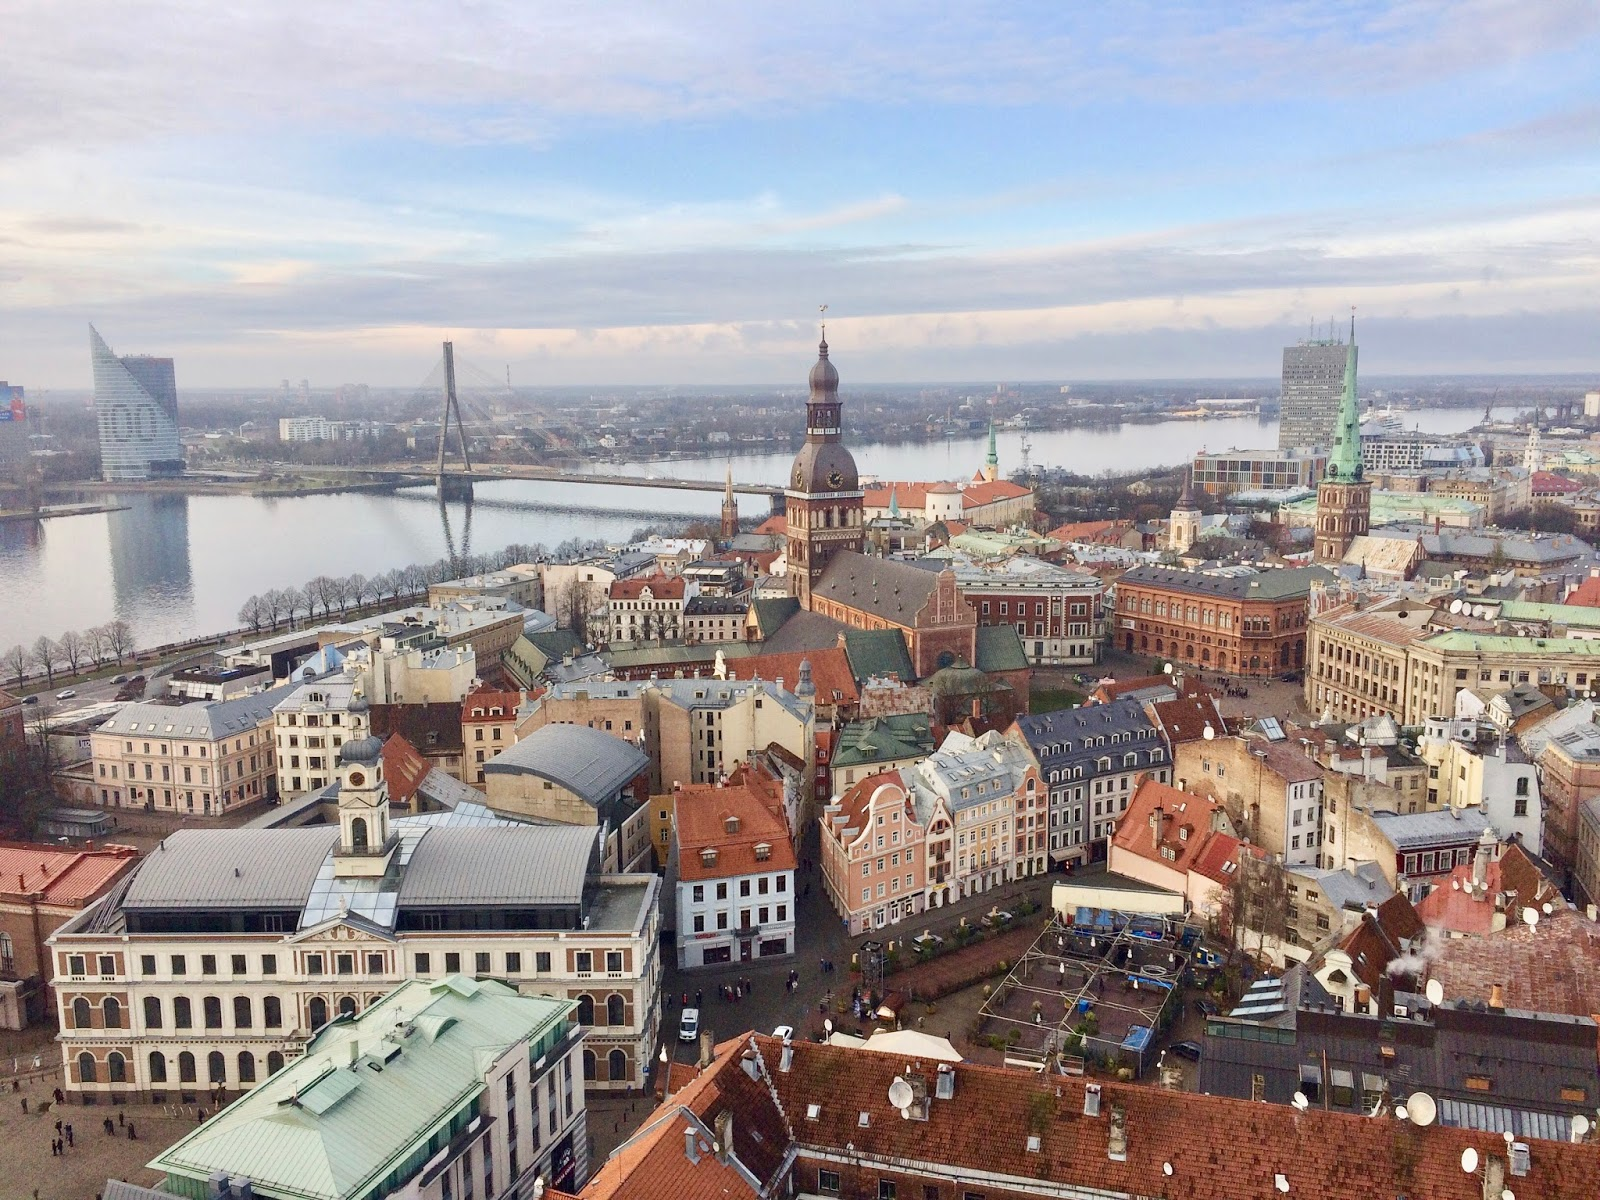 Image of Riga from St Peter's Church